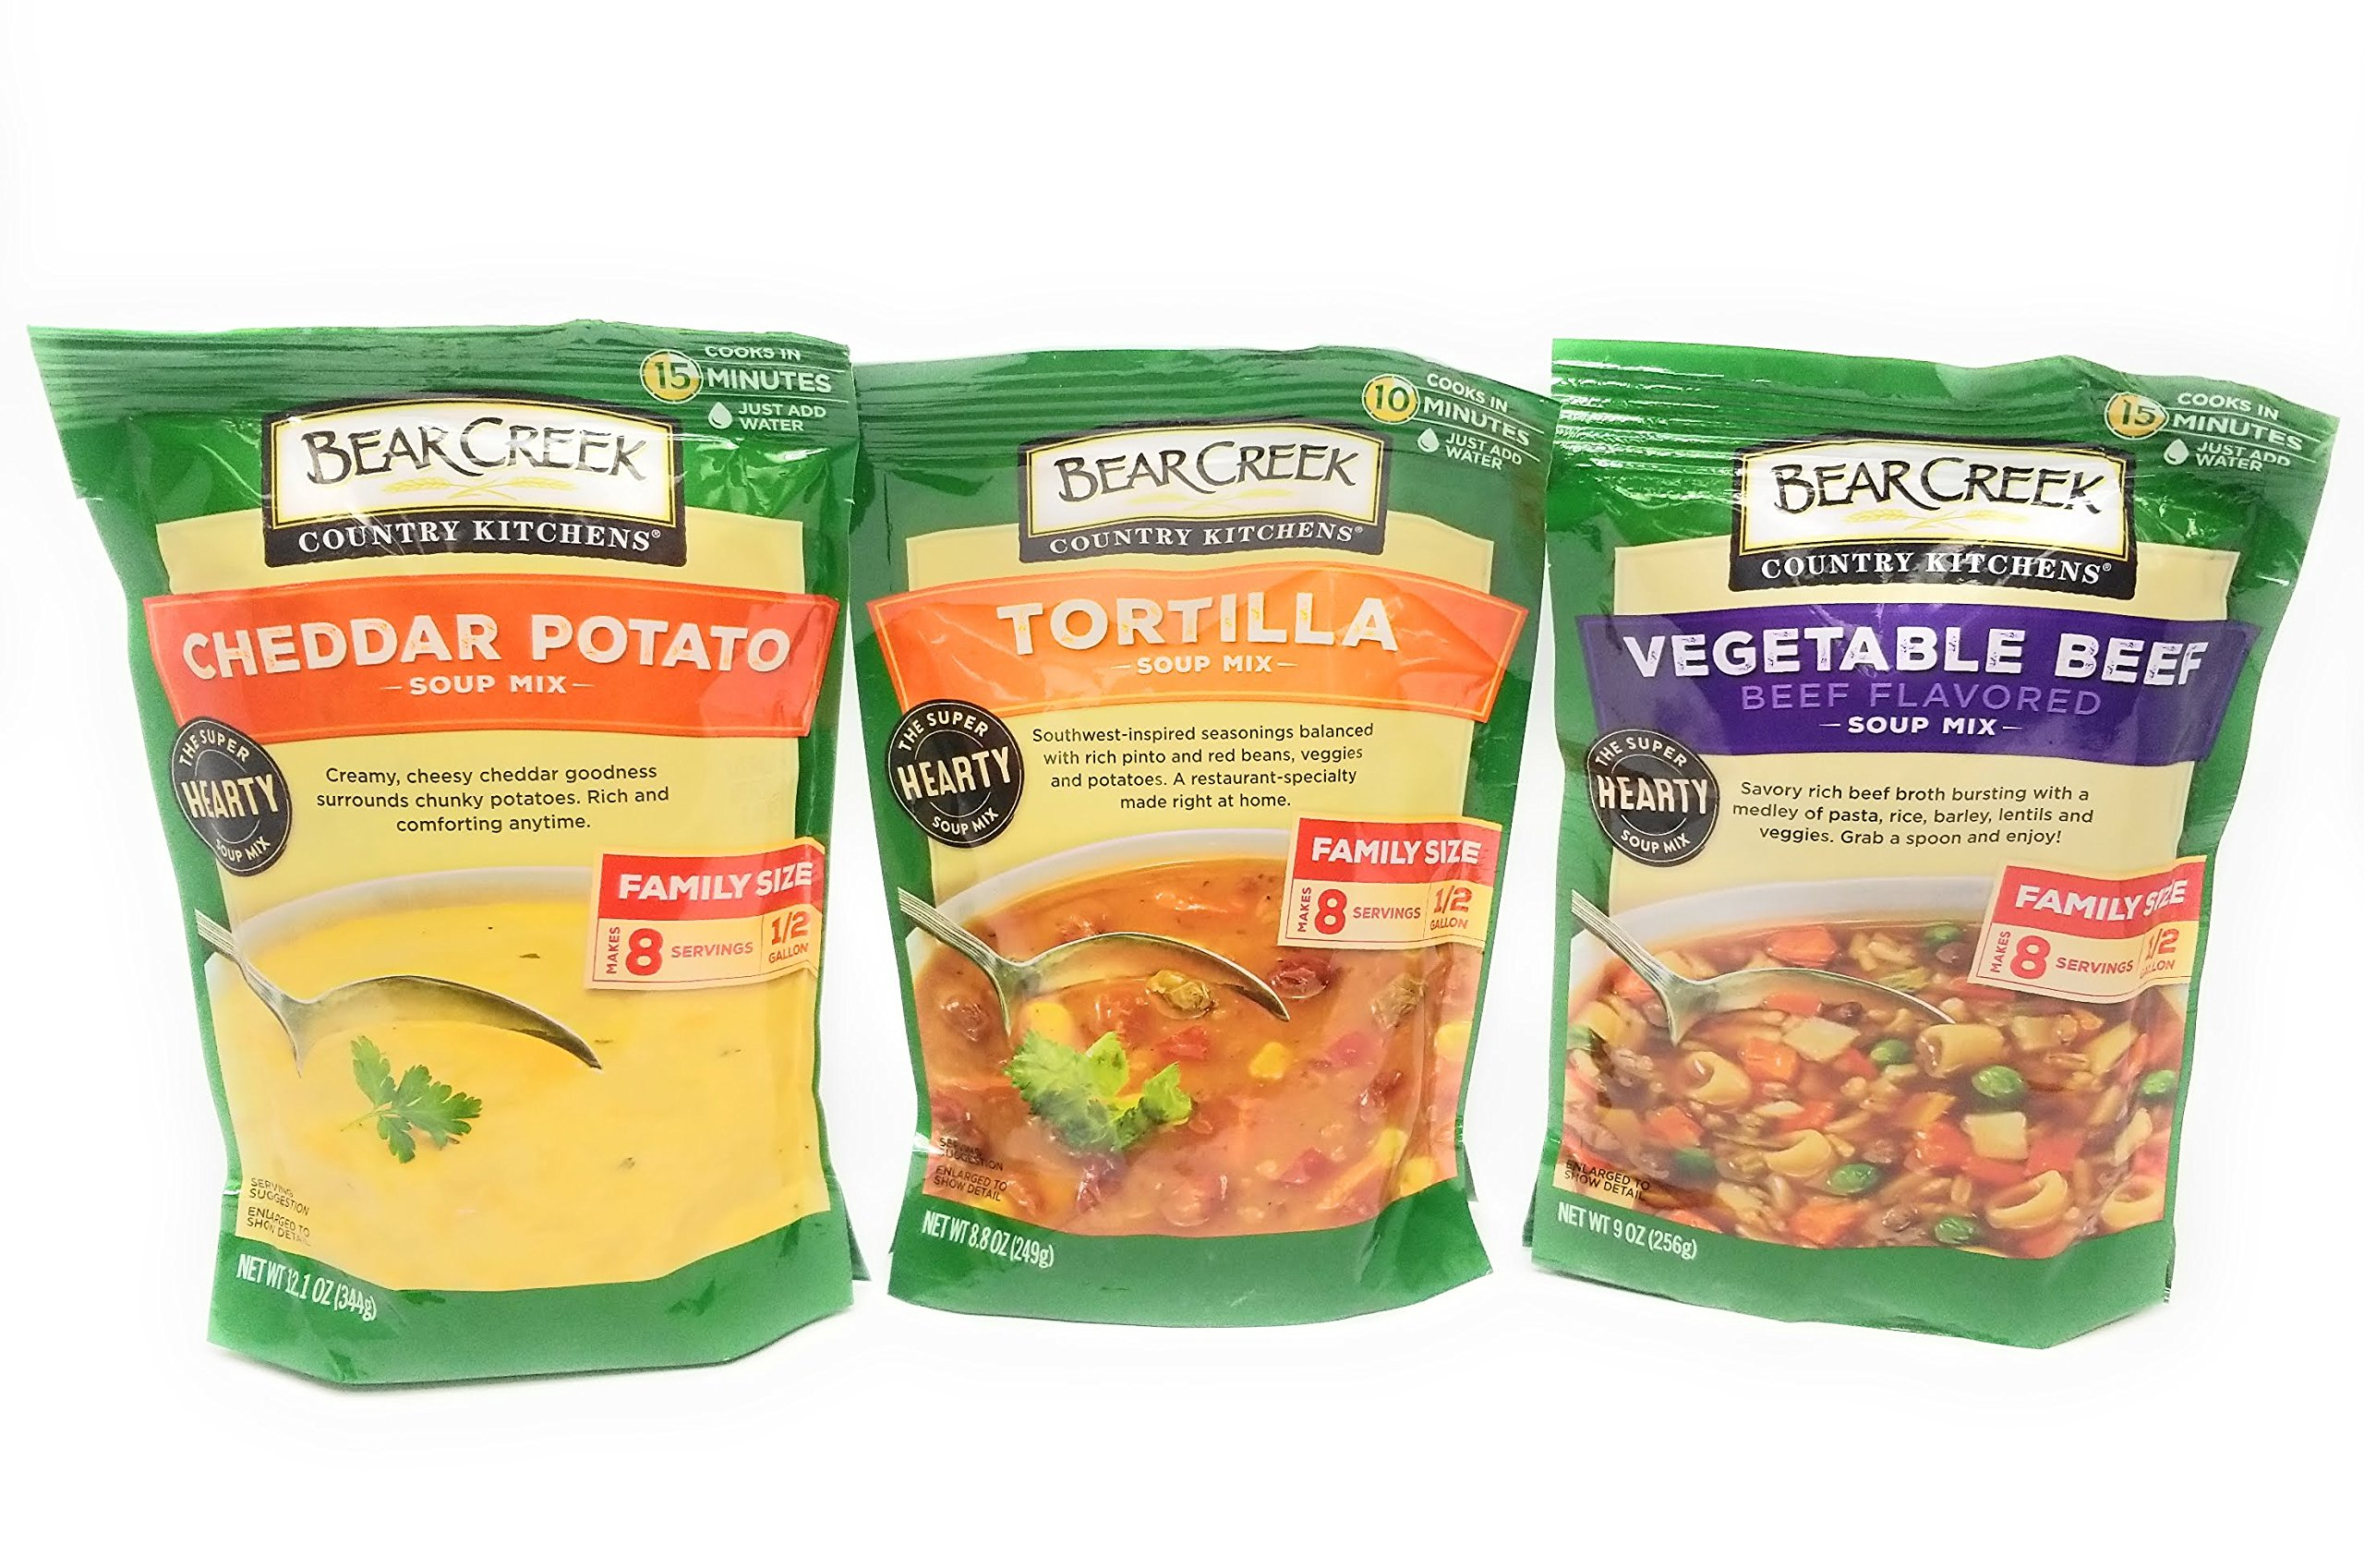 Bear Creek Country Kitchens Tortilla Soup Mix